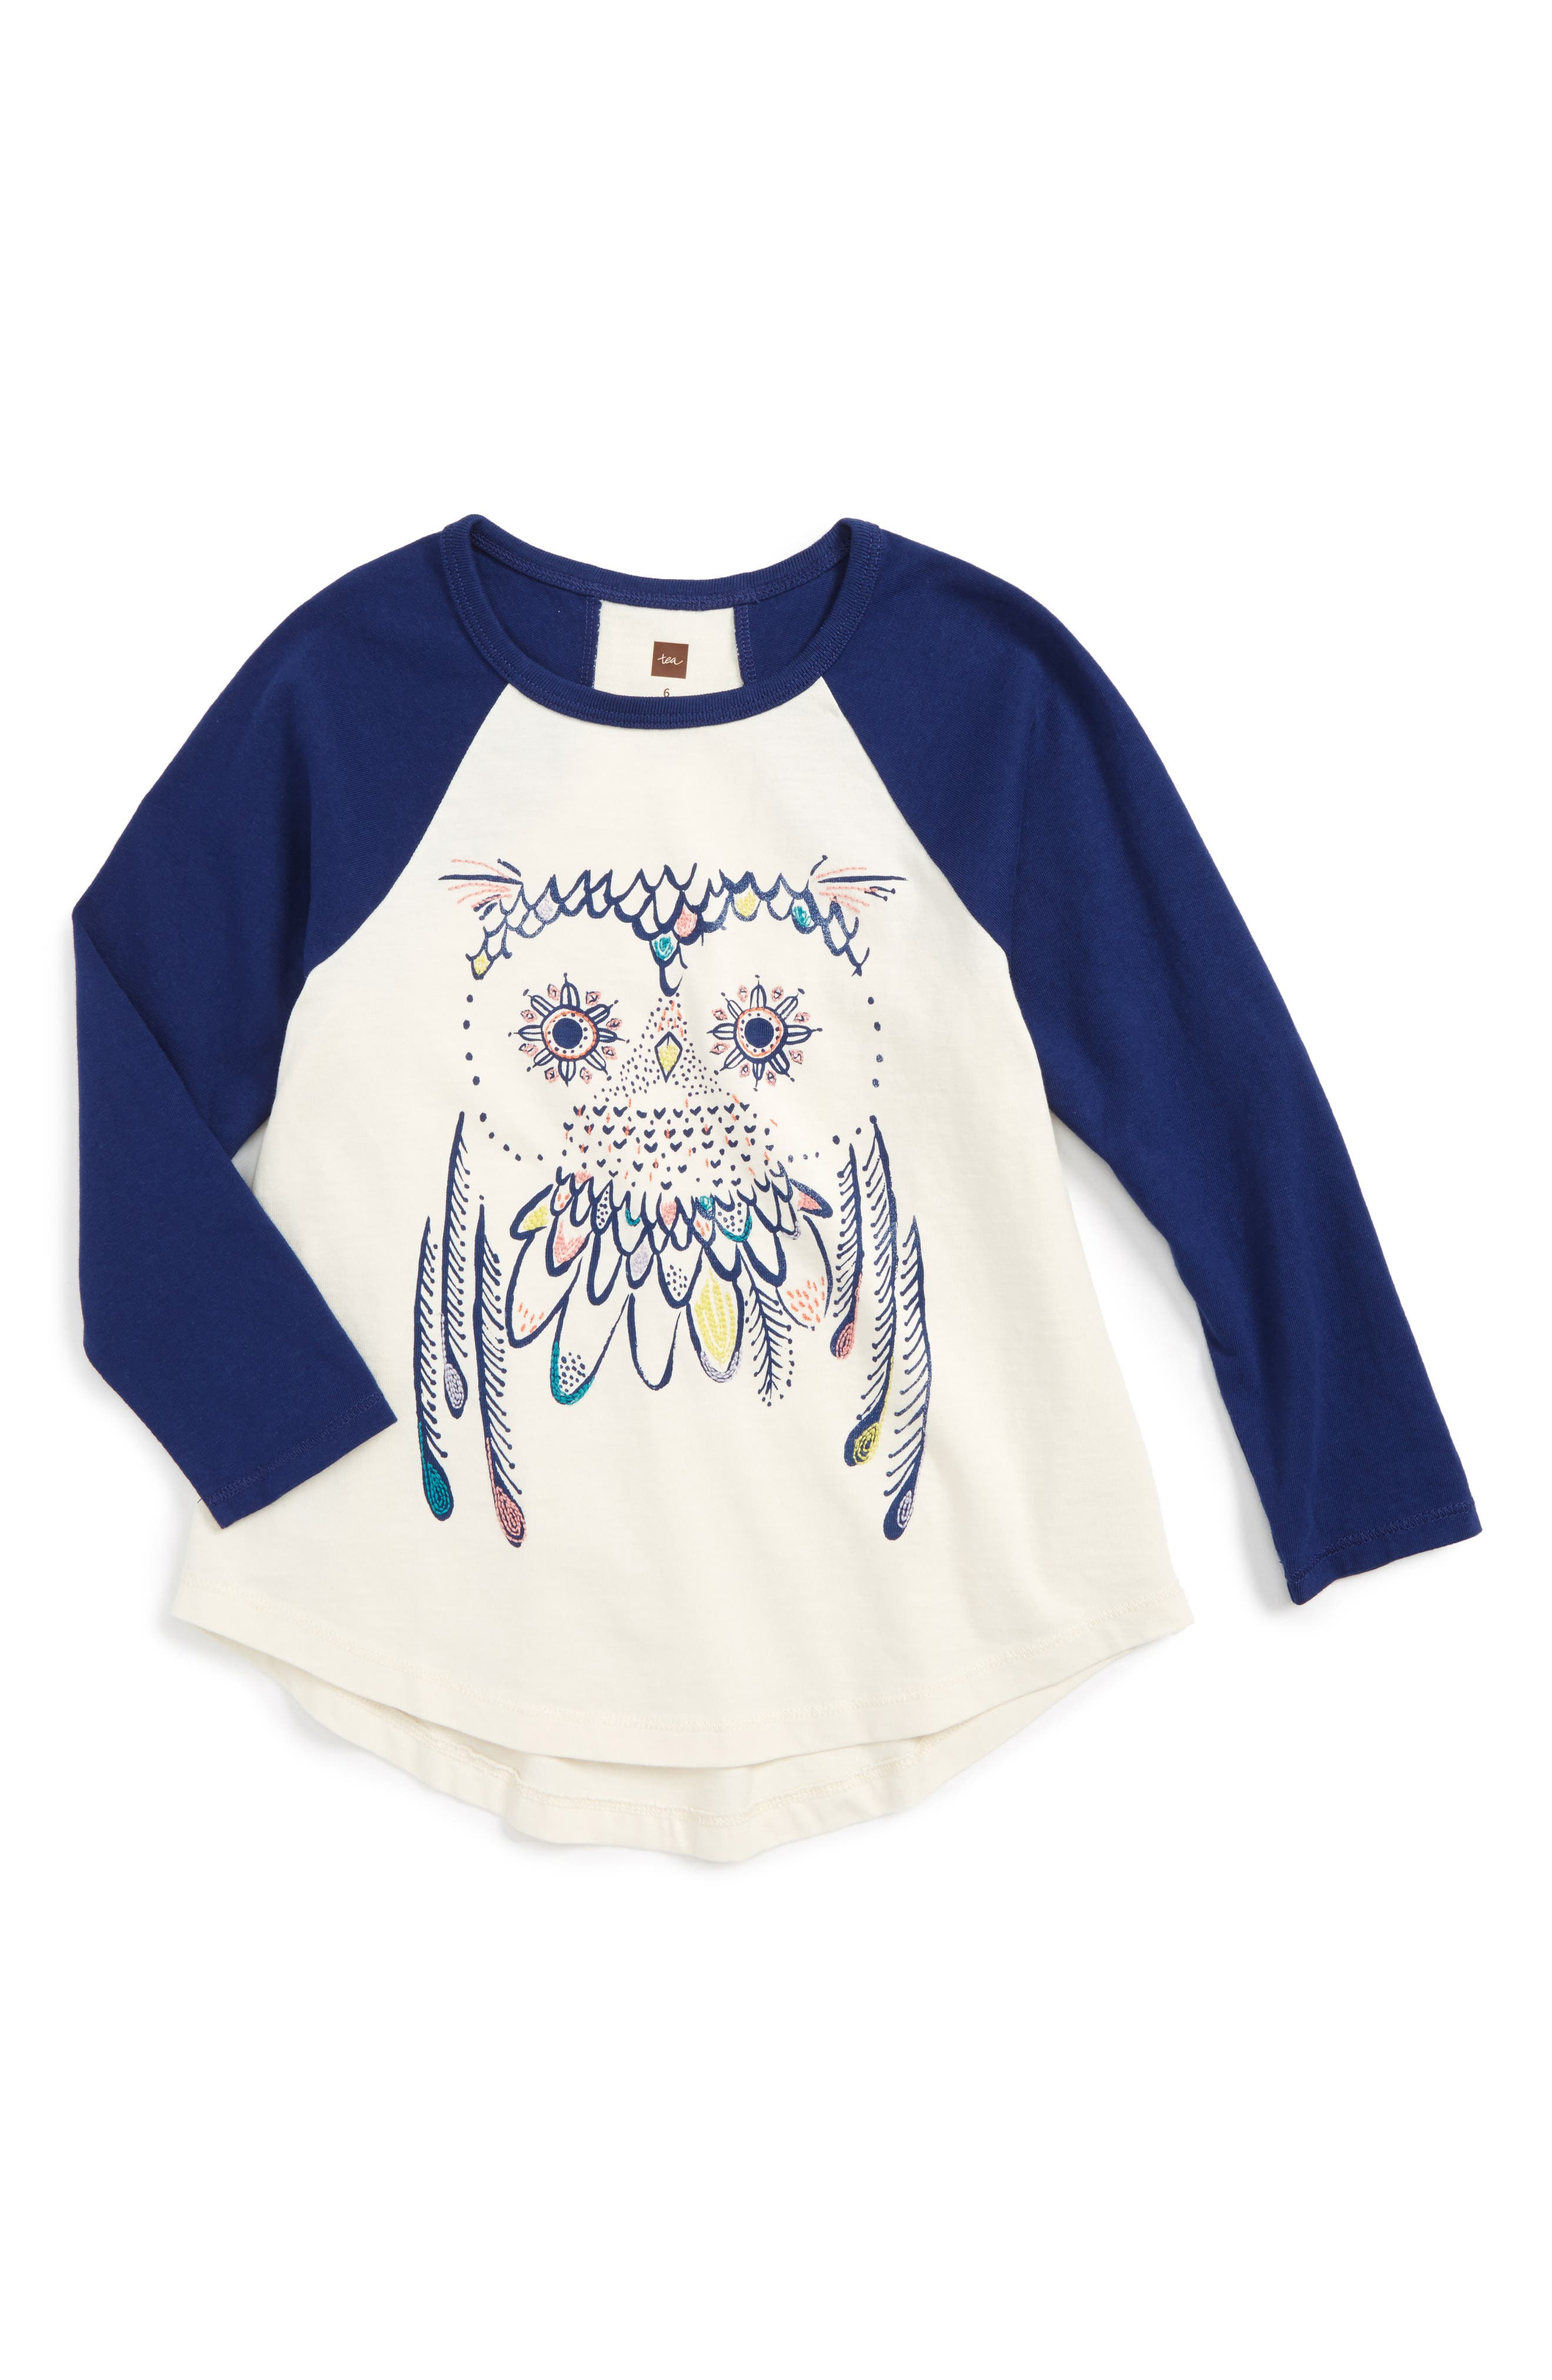 Tea Collection Alexandra Park Graphic Tee (Toddler Girls, Little Girls & Big Girls)